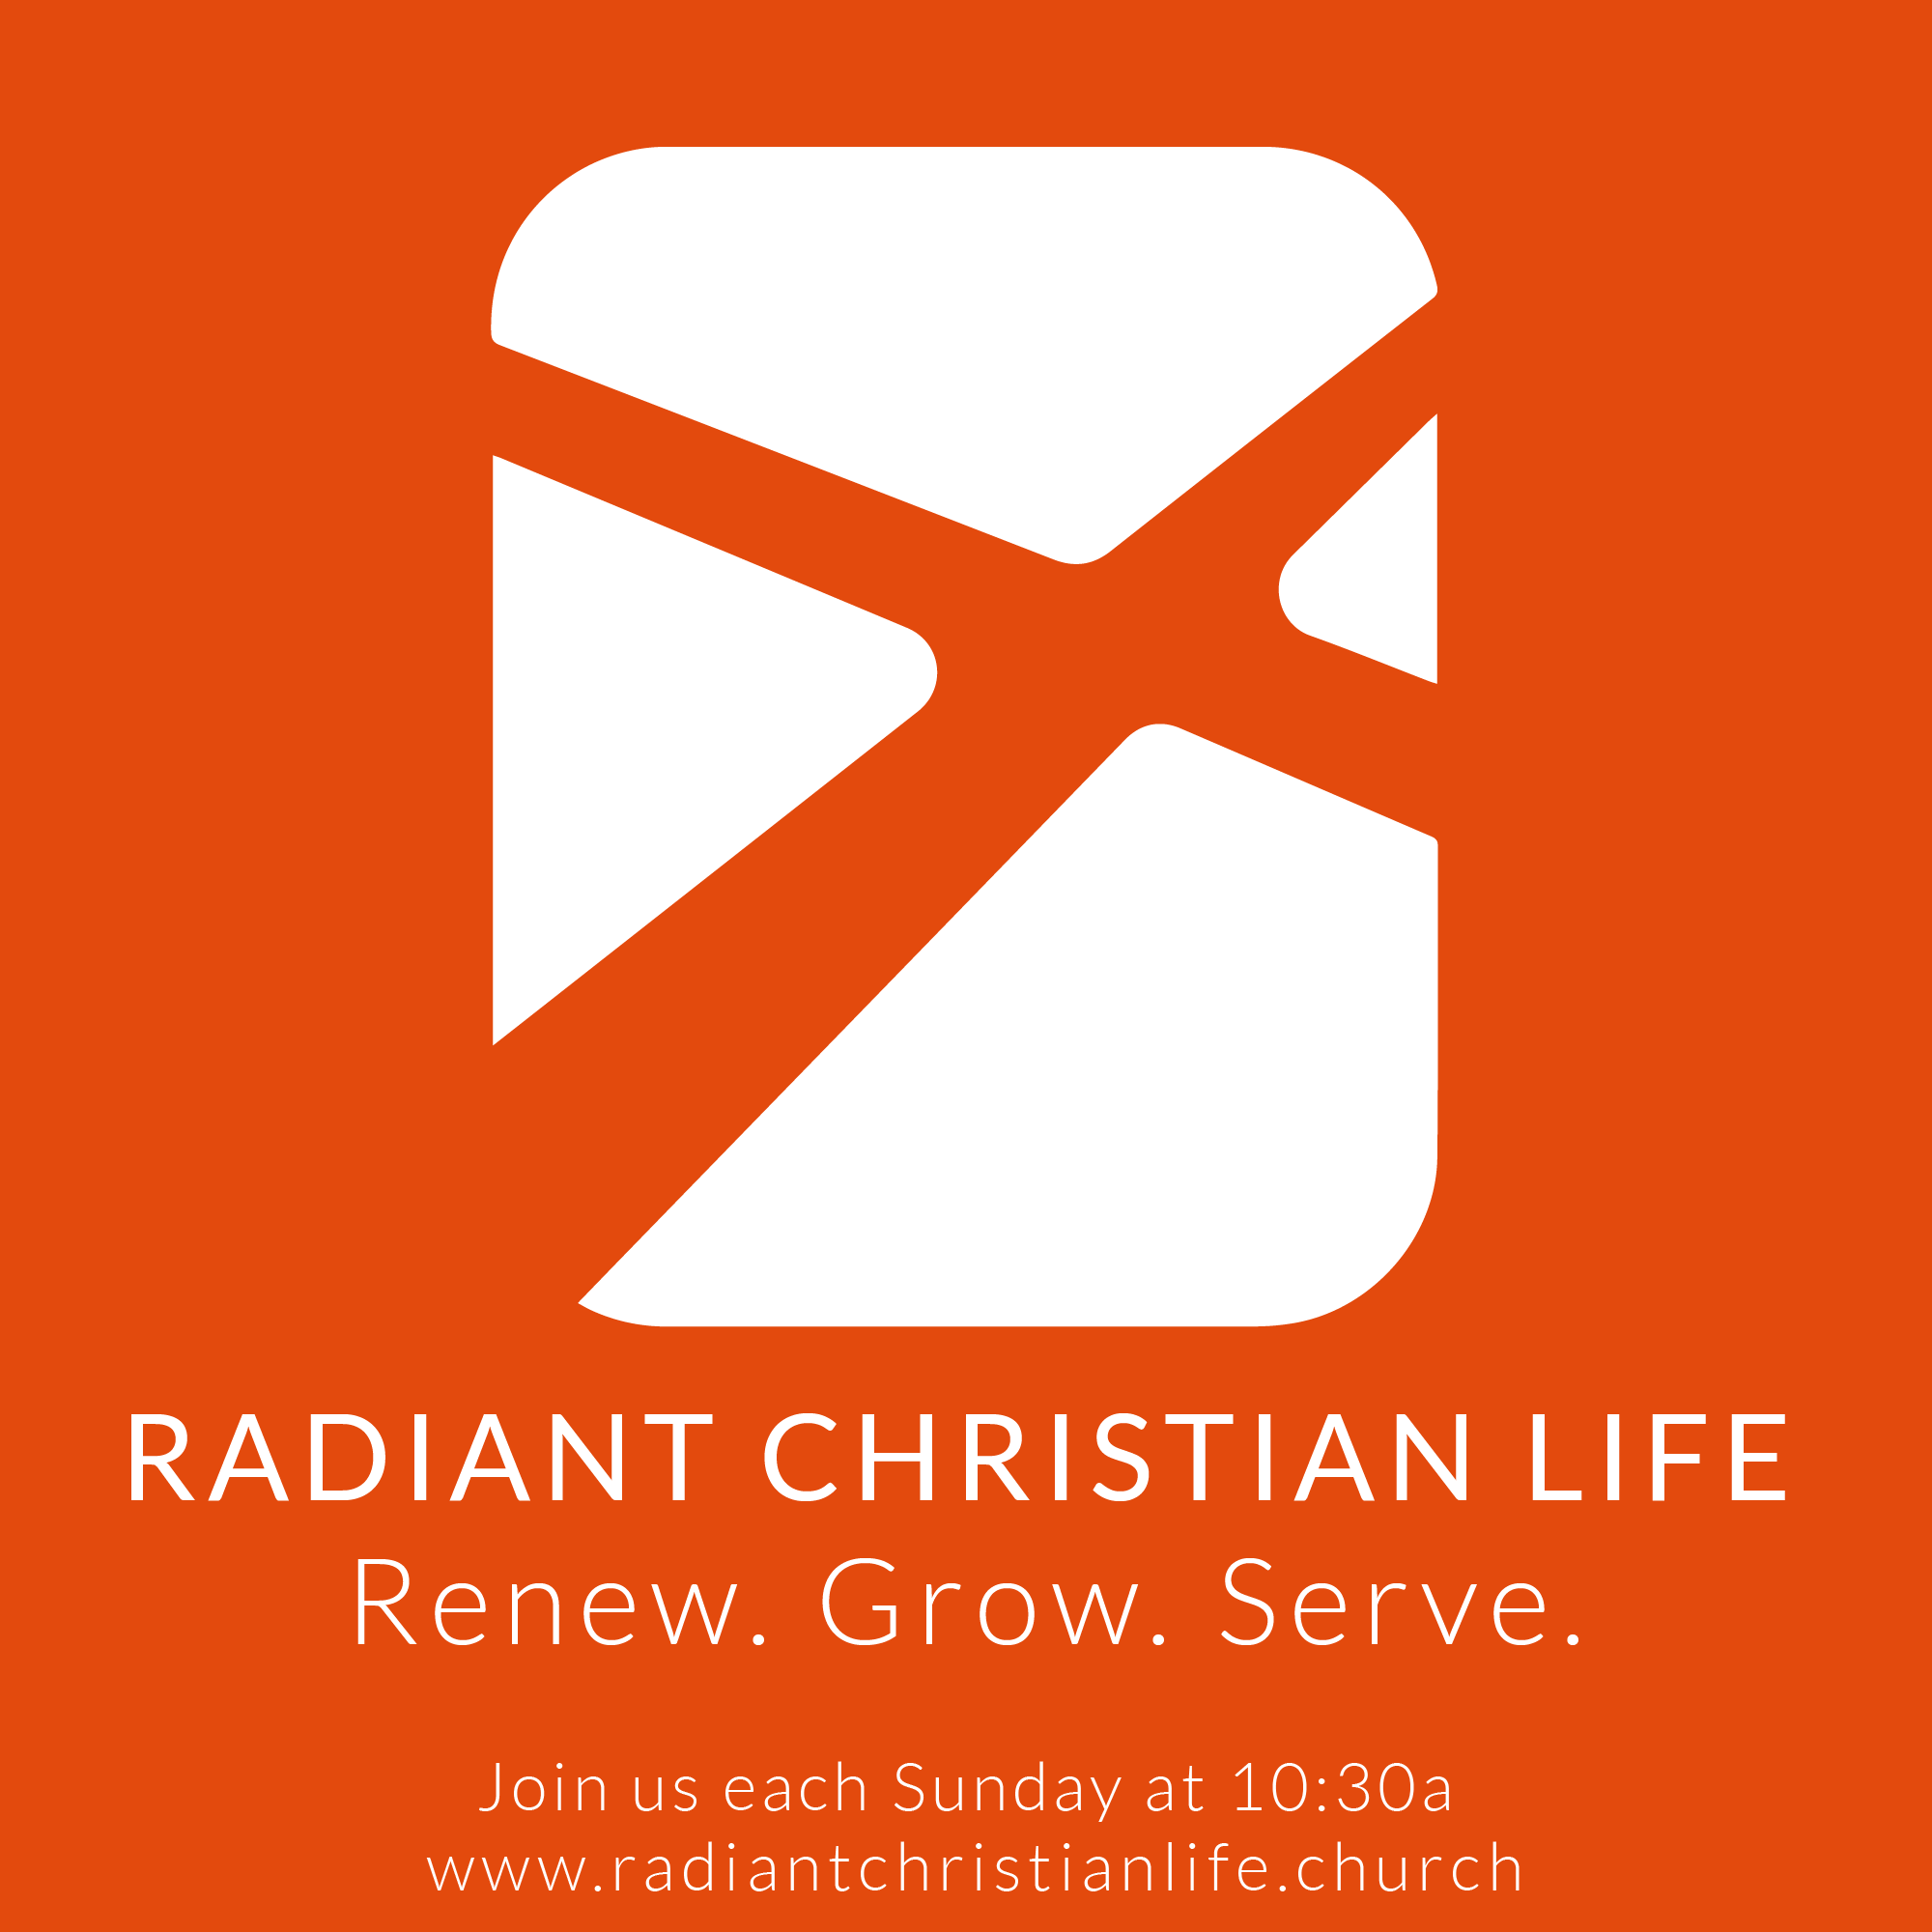 RCL_PodcastCover-01.png